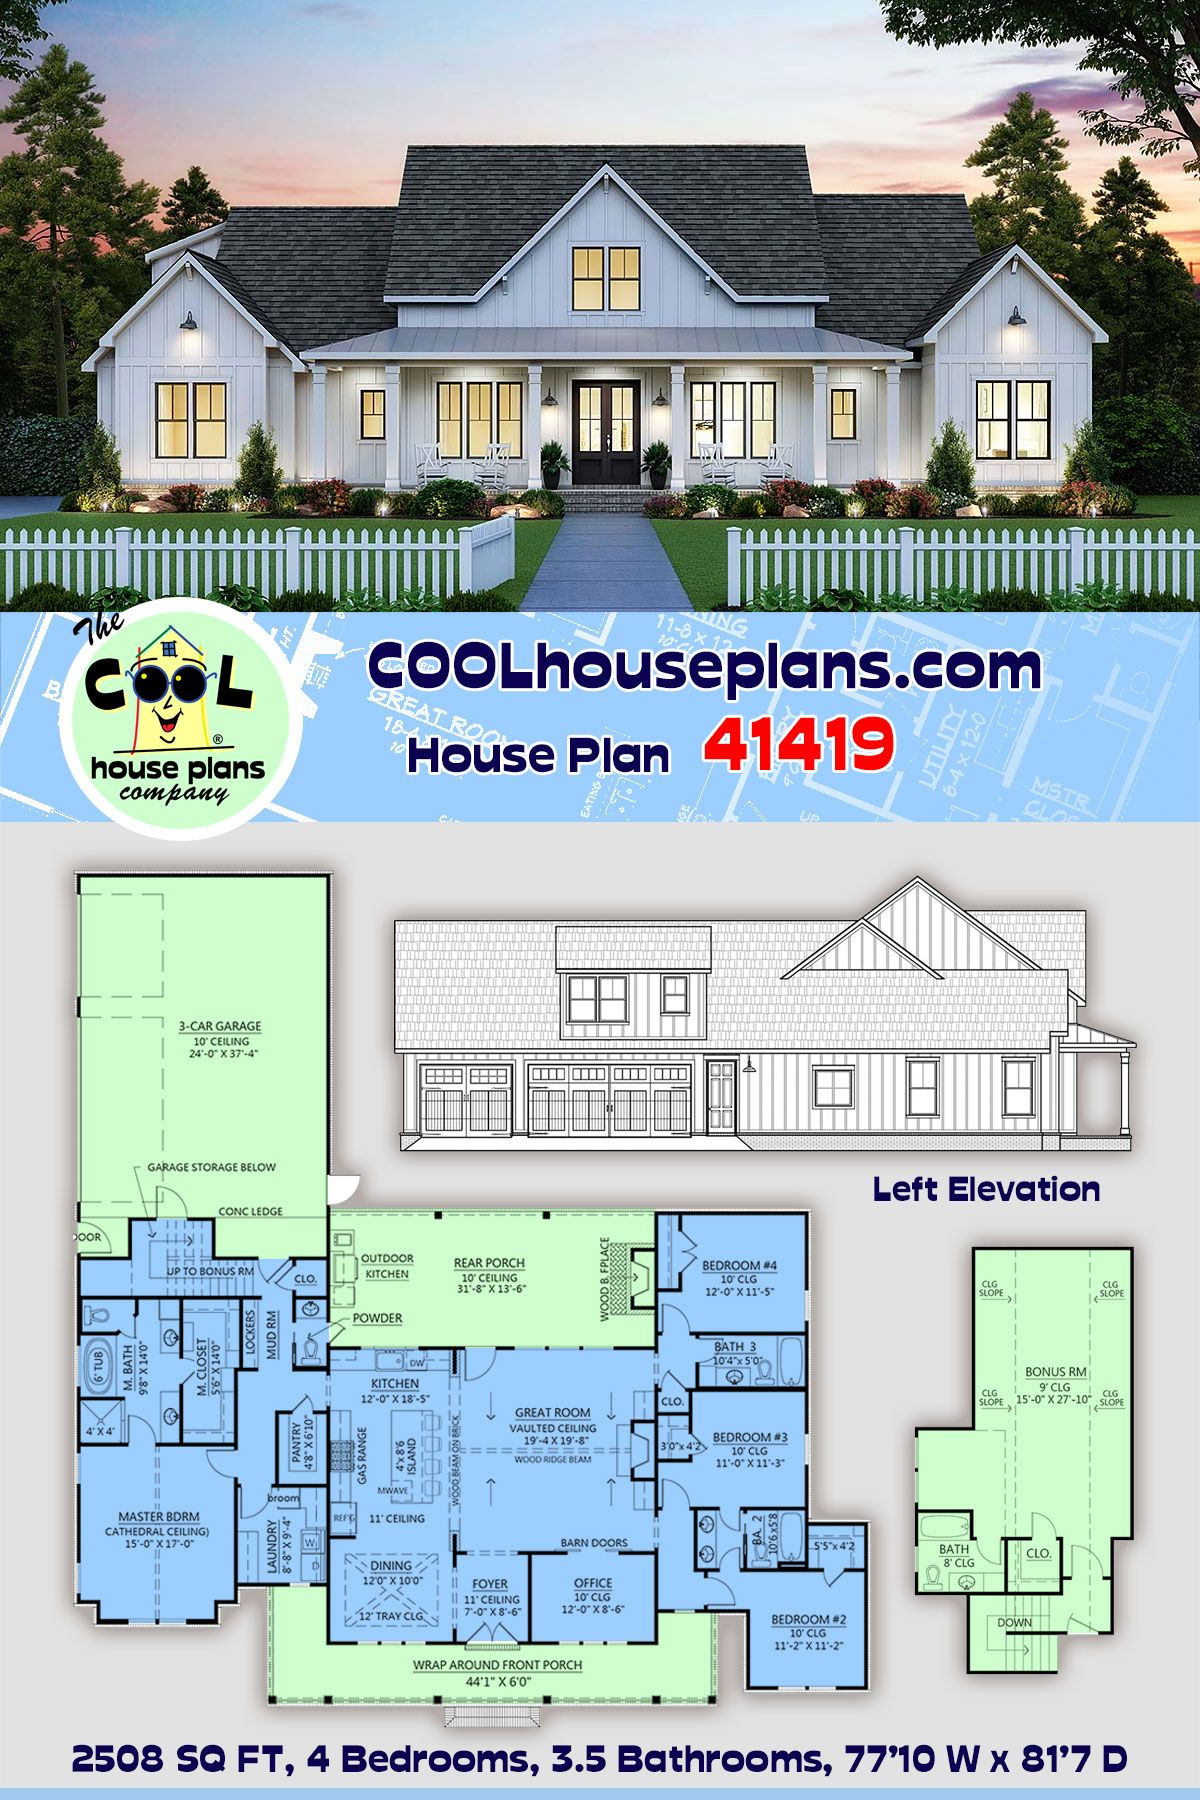 Farmhouse Style House Plan 41419 with 4 Bed, 4 Bat